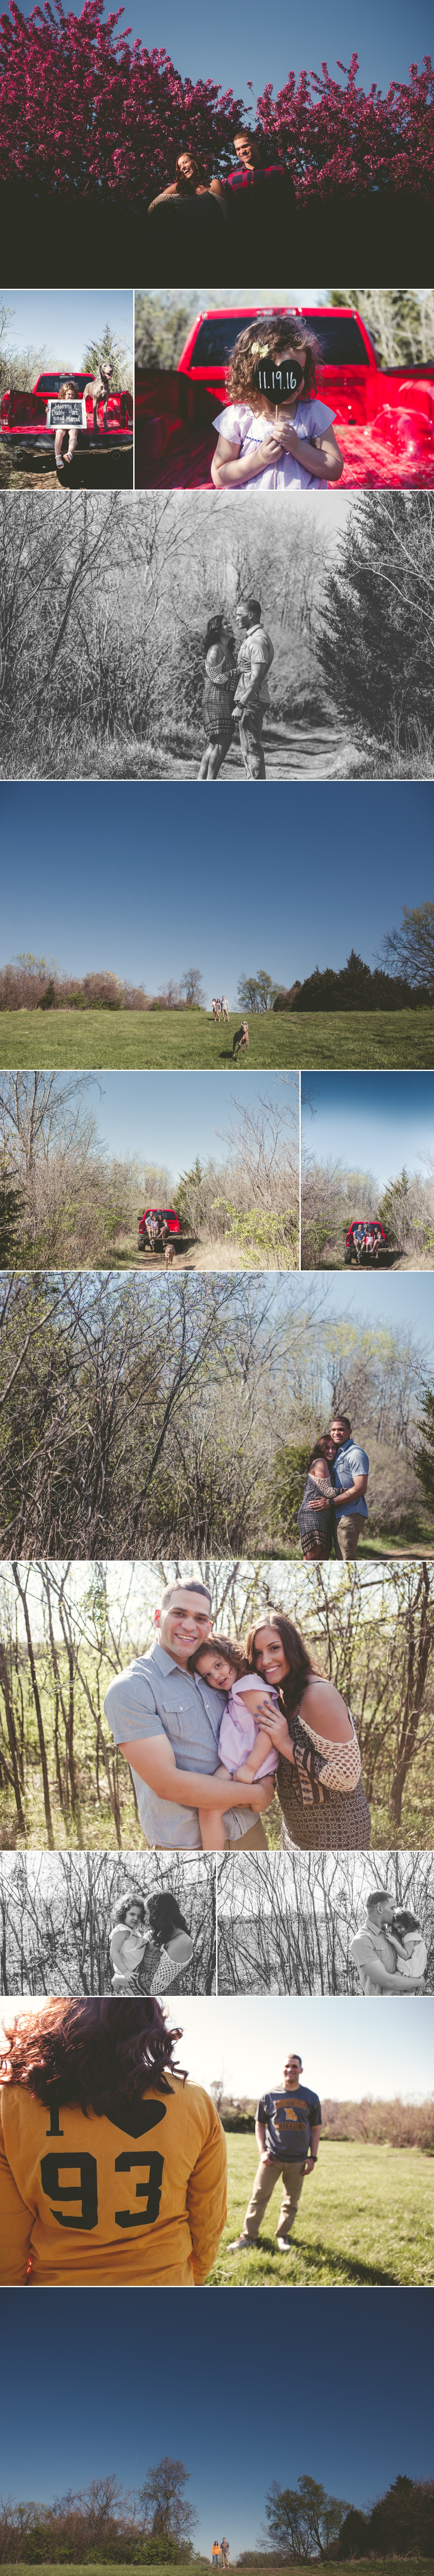 jason_domingues_photography_best_kansas_city_wedding_photographer_engagement_session_portraits_downtown_country_pickup_truck_dog_liberty_memorial_us_army_1_